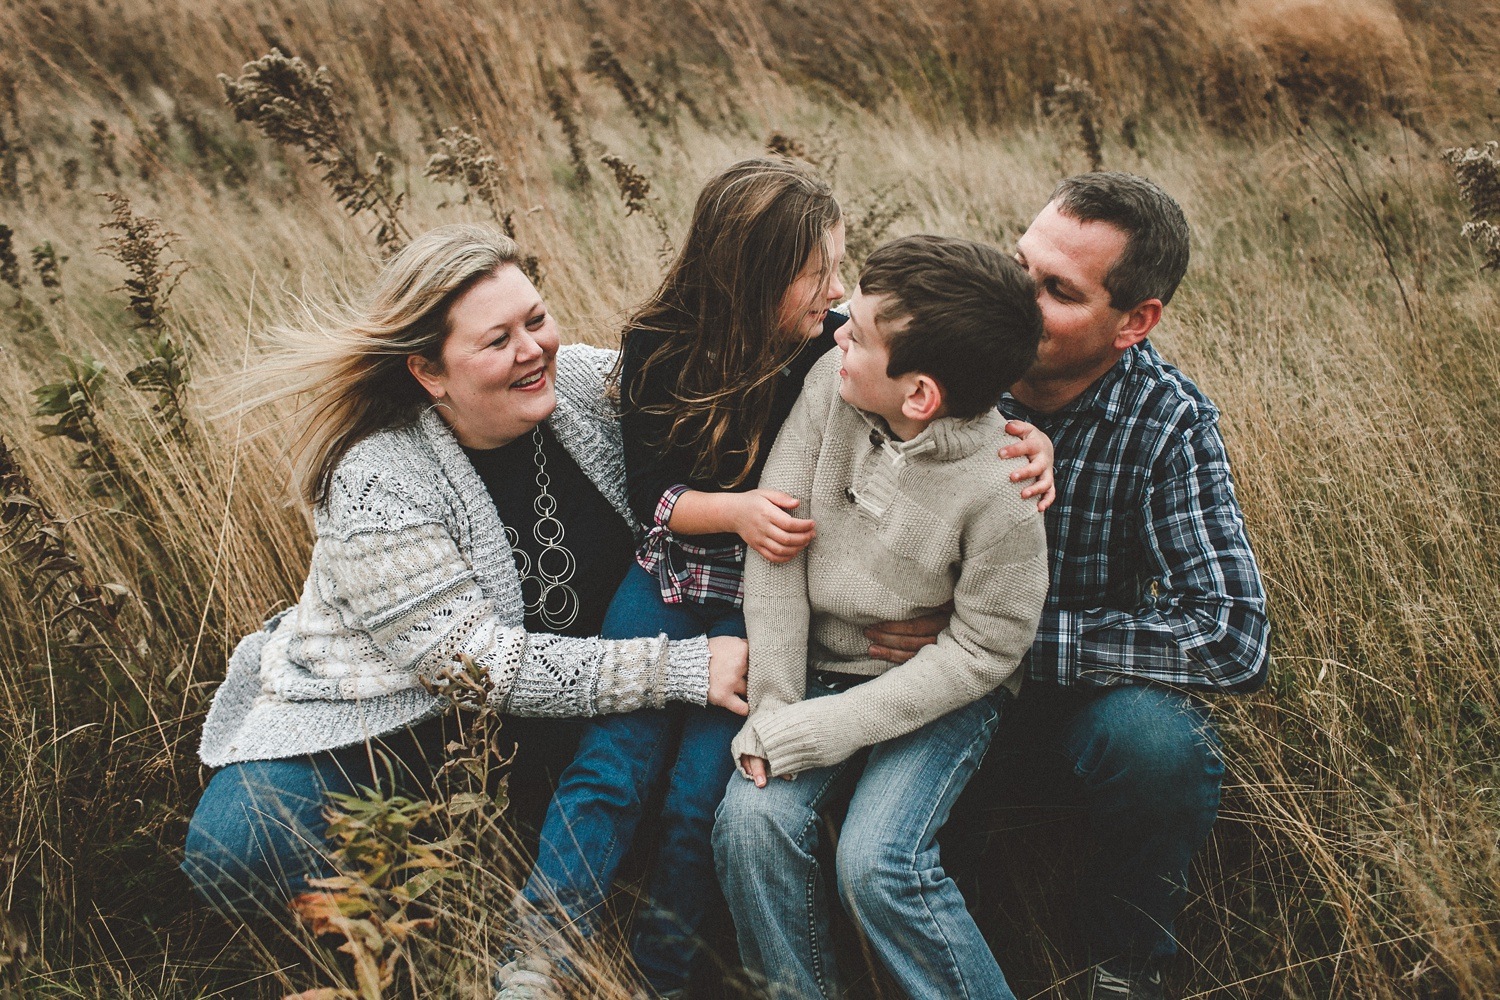 nachusa_grasslands_Franklin_Grove_IL_family_portrait_photographer_0001.jpg